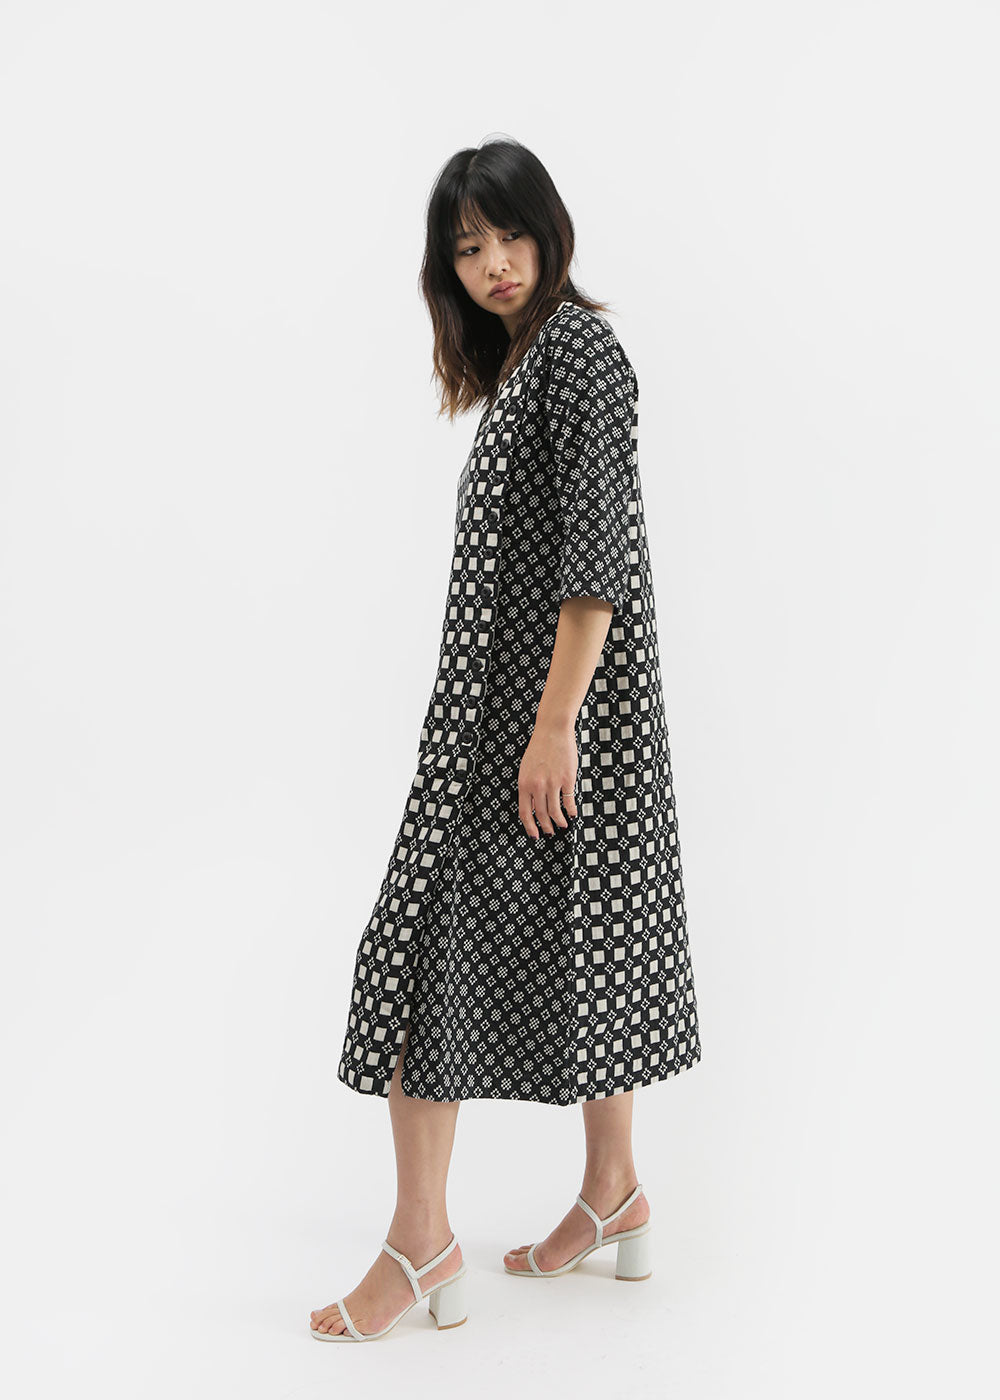 Ace & Jig Drew Brighton Dress — New Classics Studios